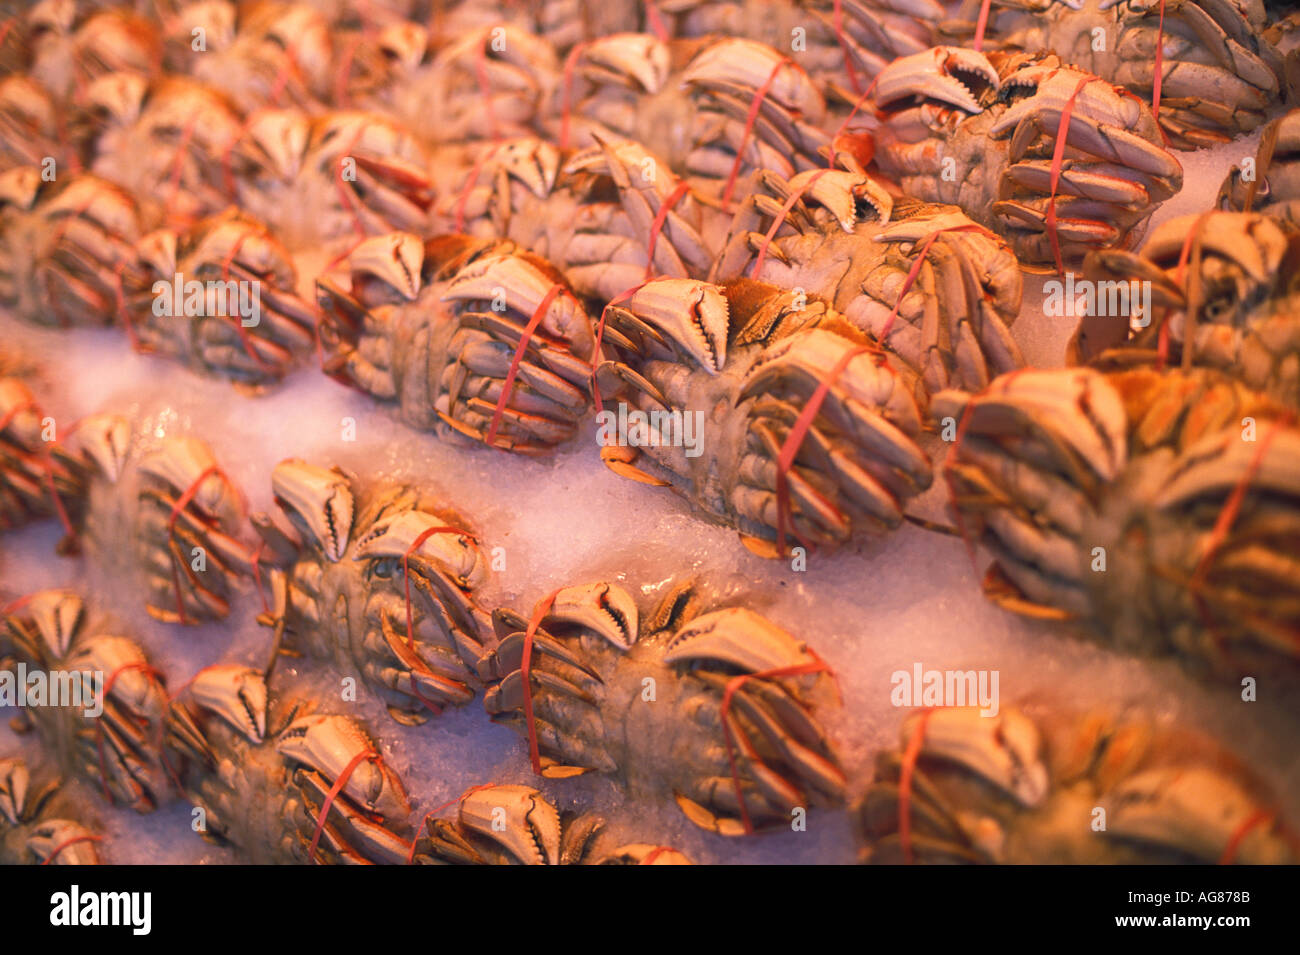 Crabs for sale at fish market - Stock Image